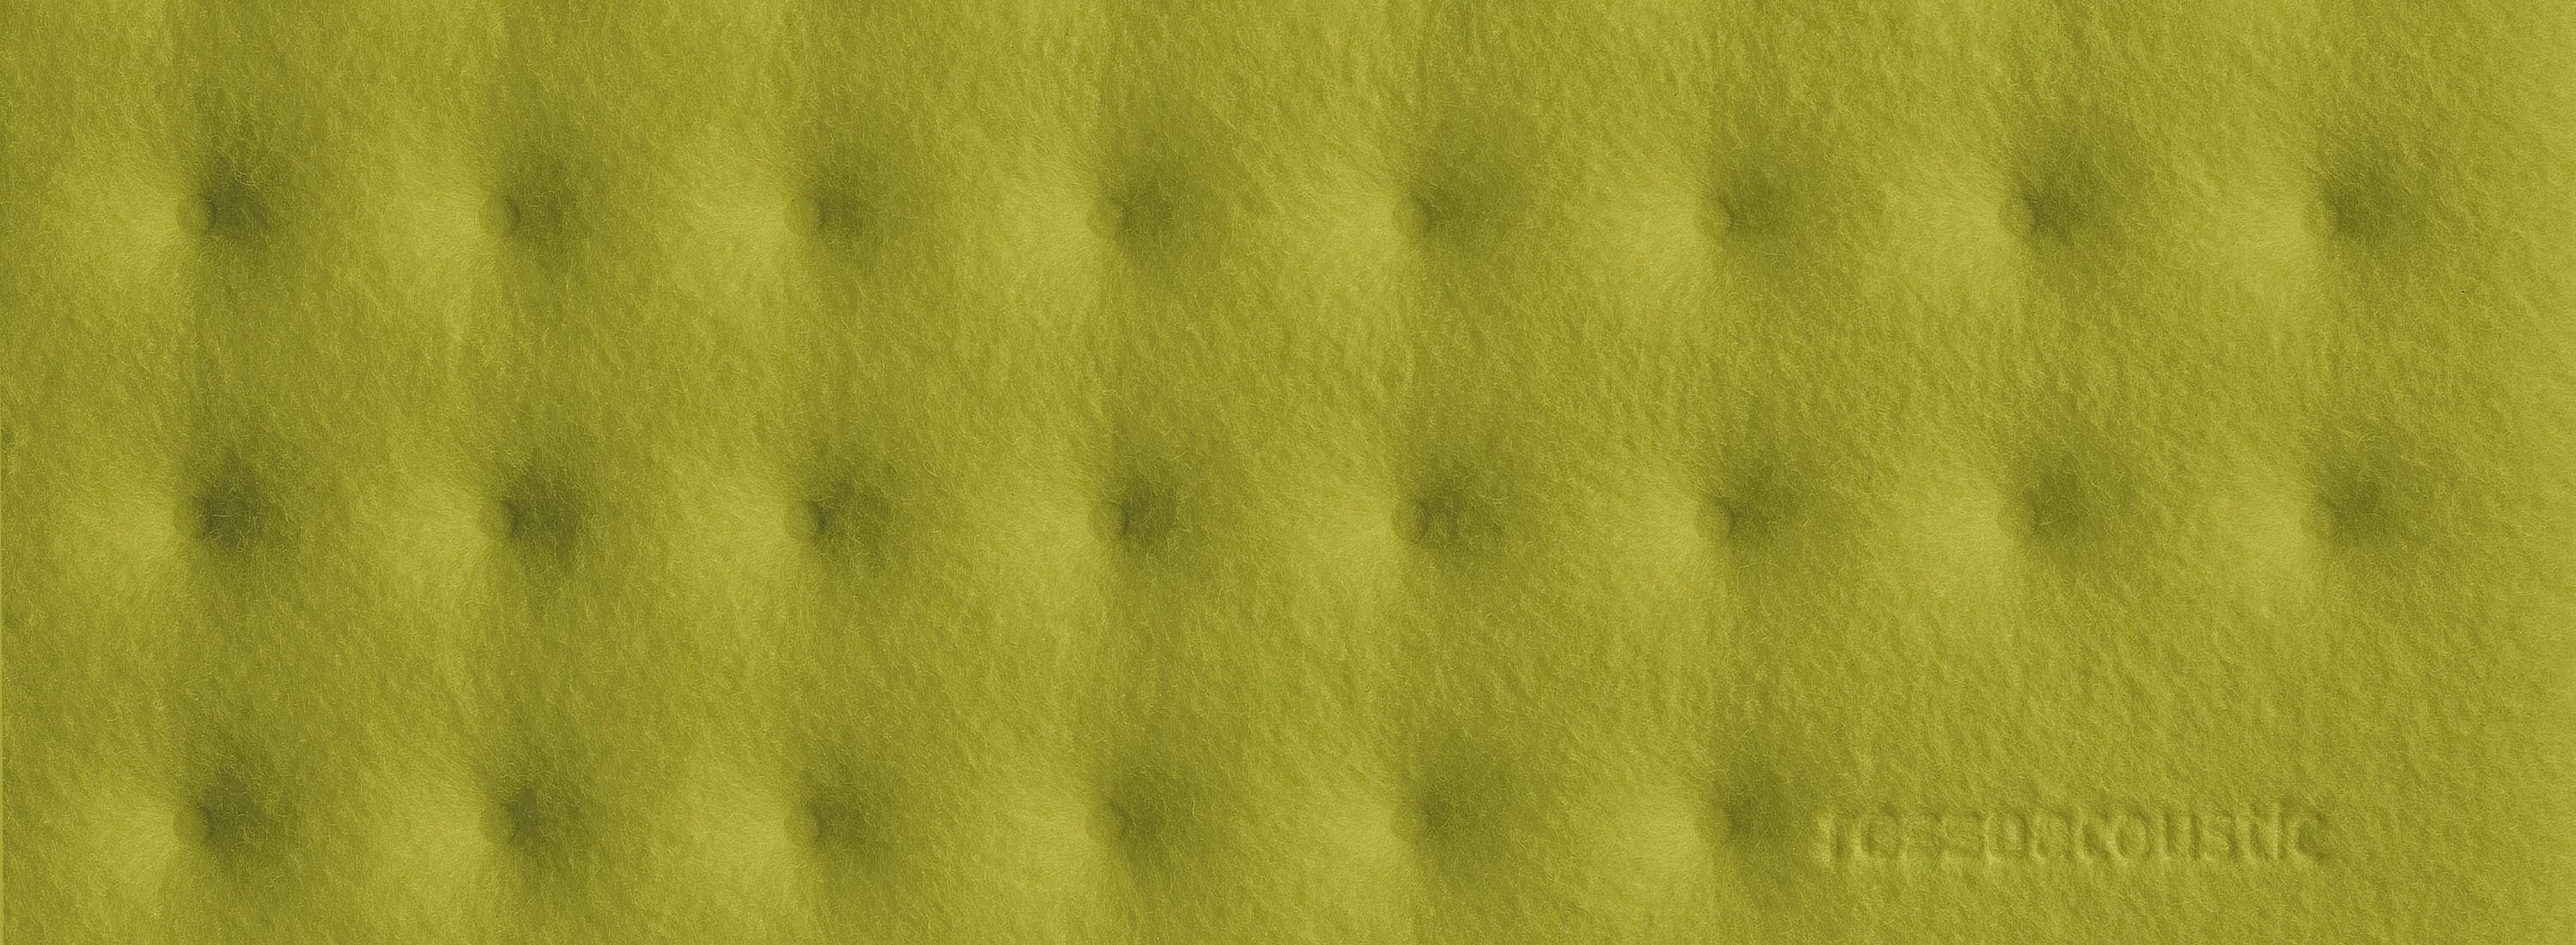 Rossoacoustic PAD Q 600 Basic, 600 x 600 x 25 mm, soft moss